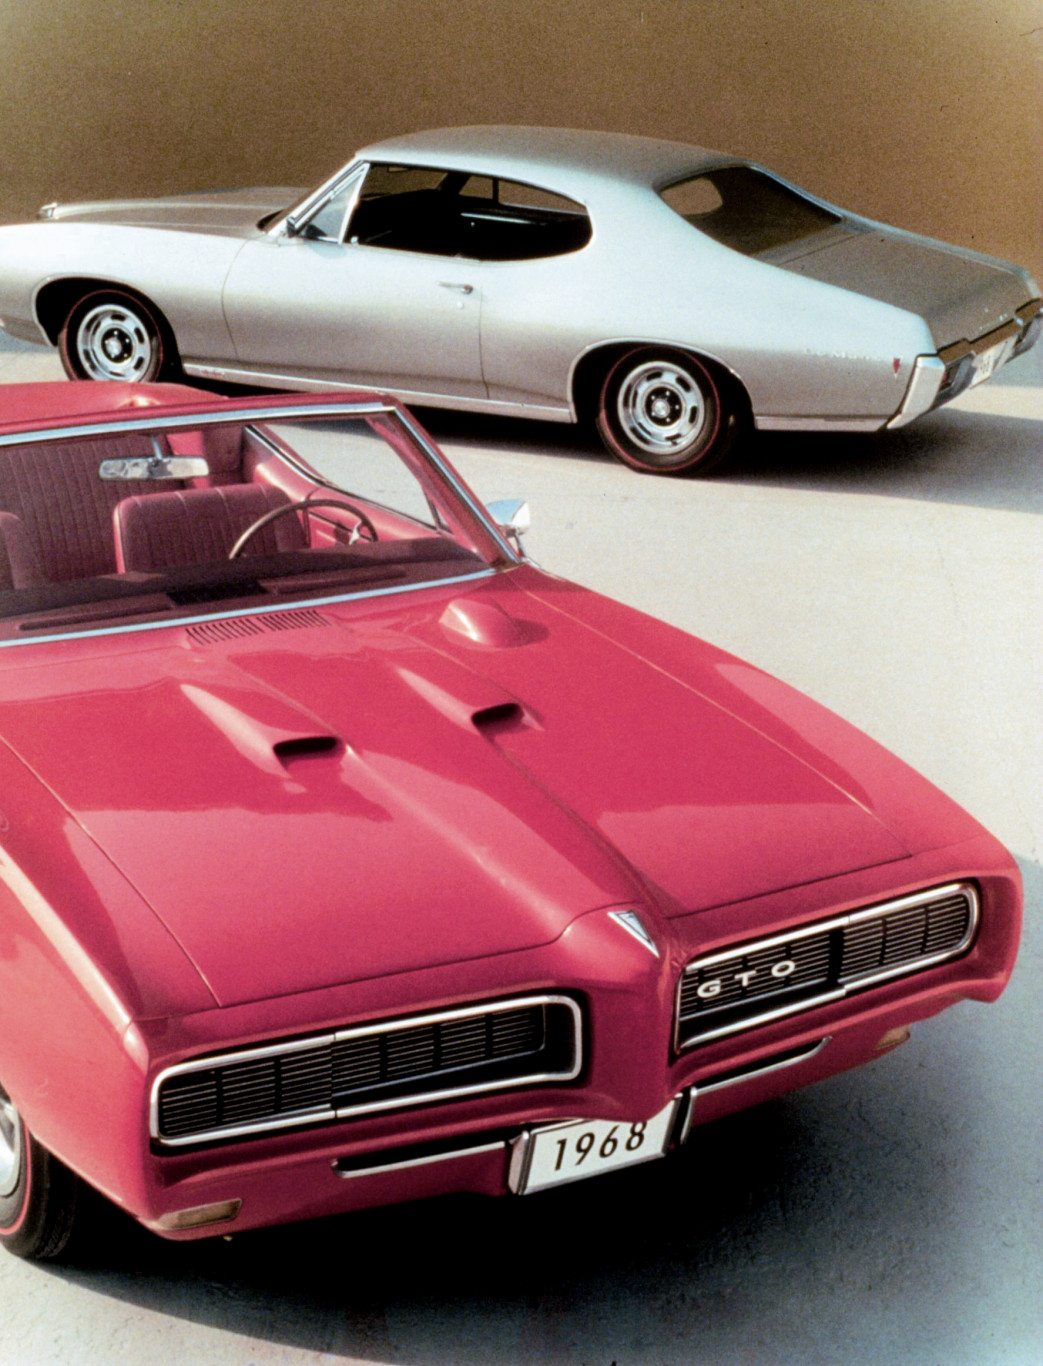 1968 Pontiac GTO Convertible and Hardtop